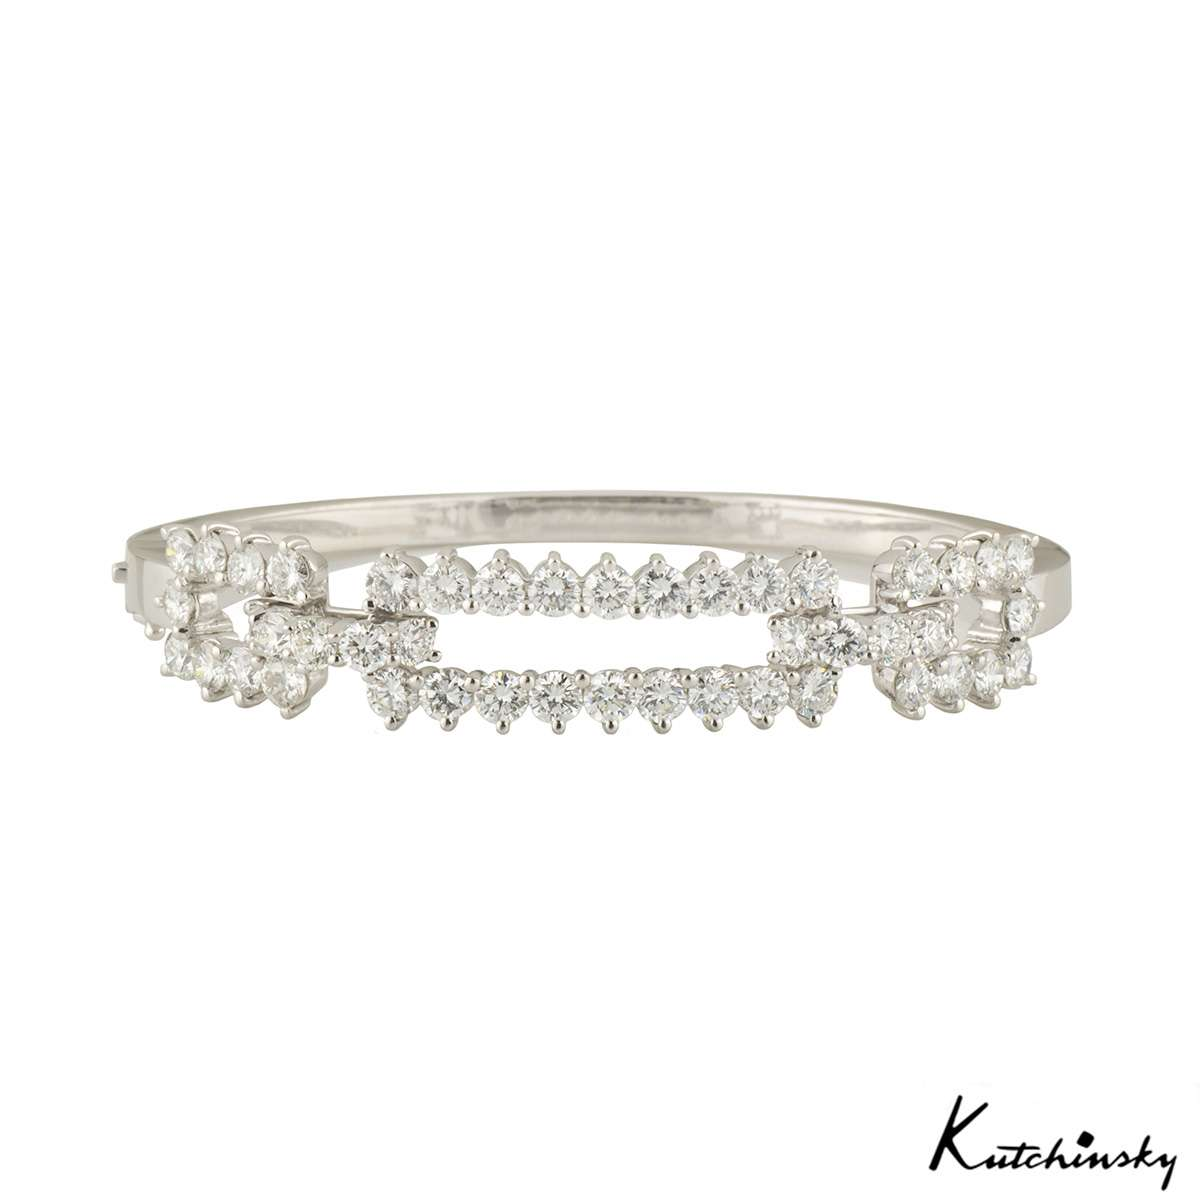 Kutchinsky White Gold Diamond Bangle 4.60ct